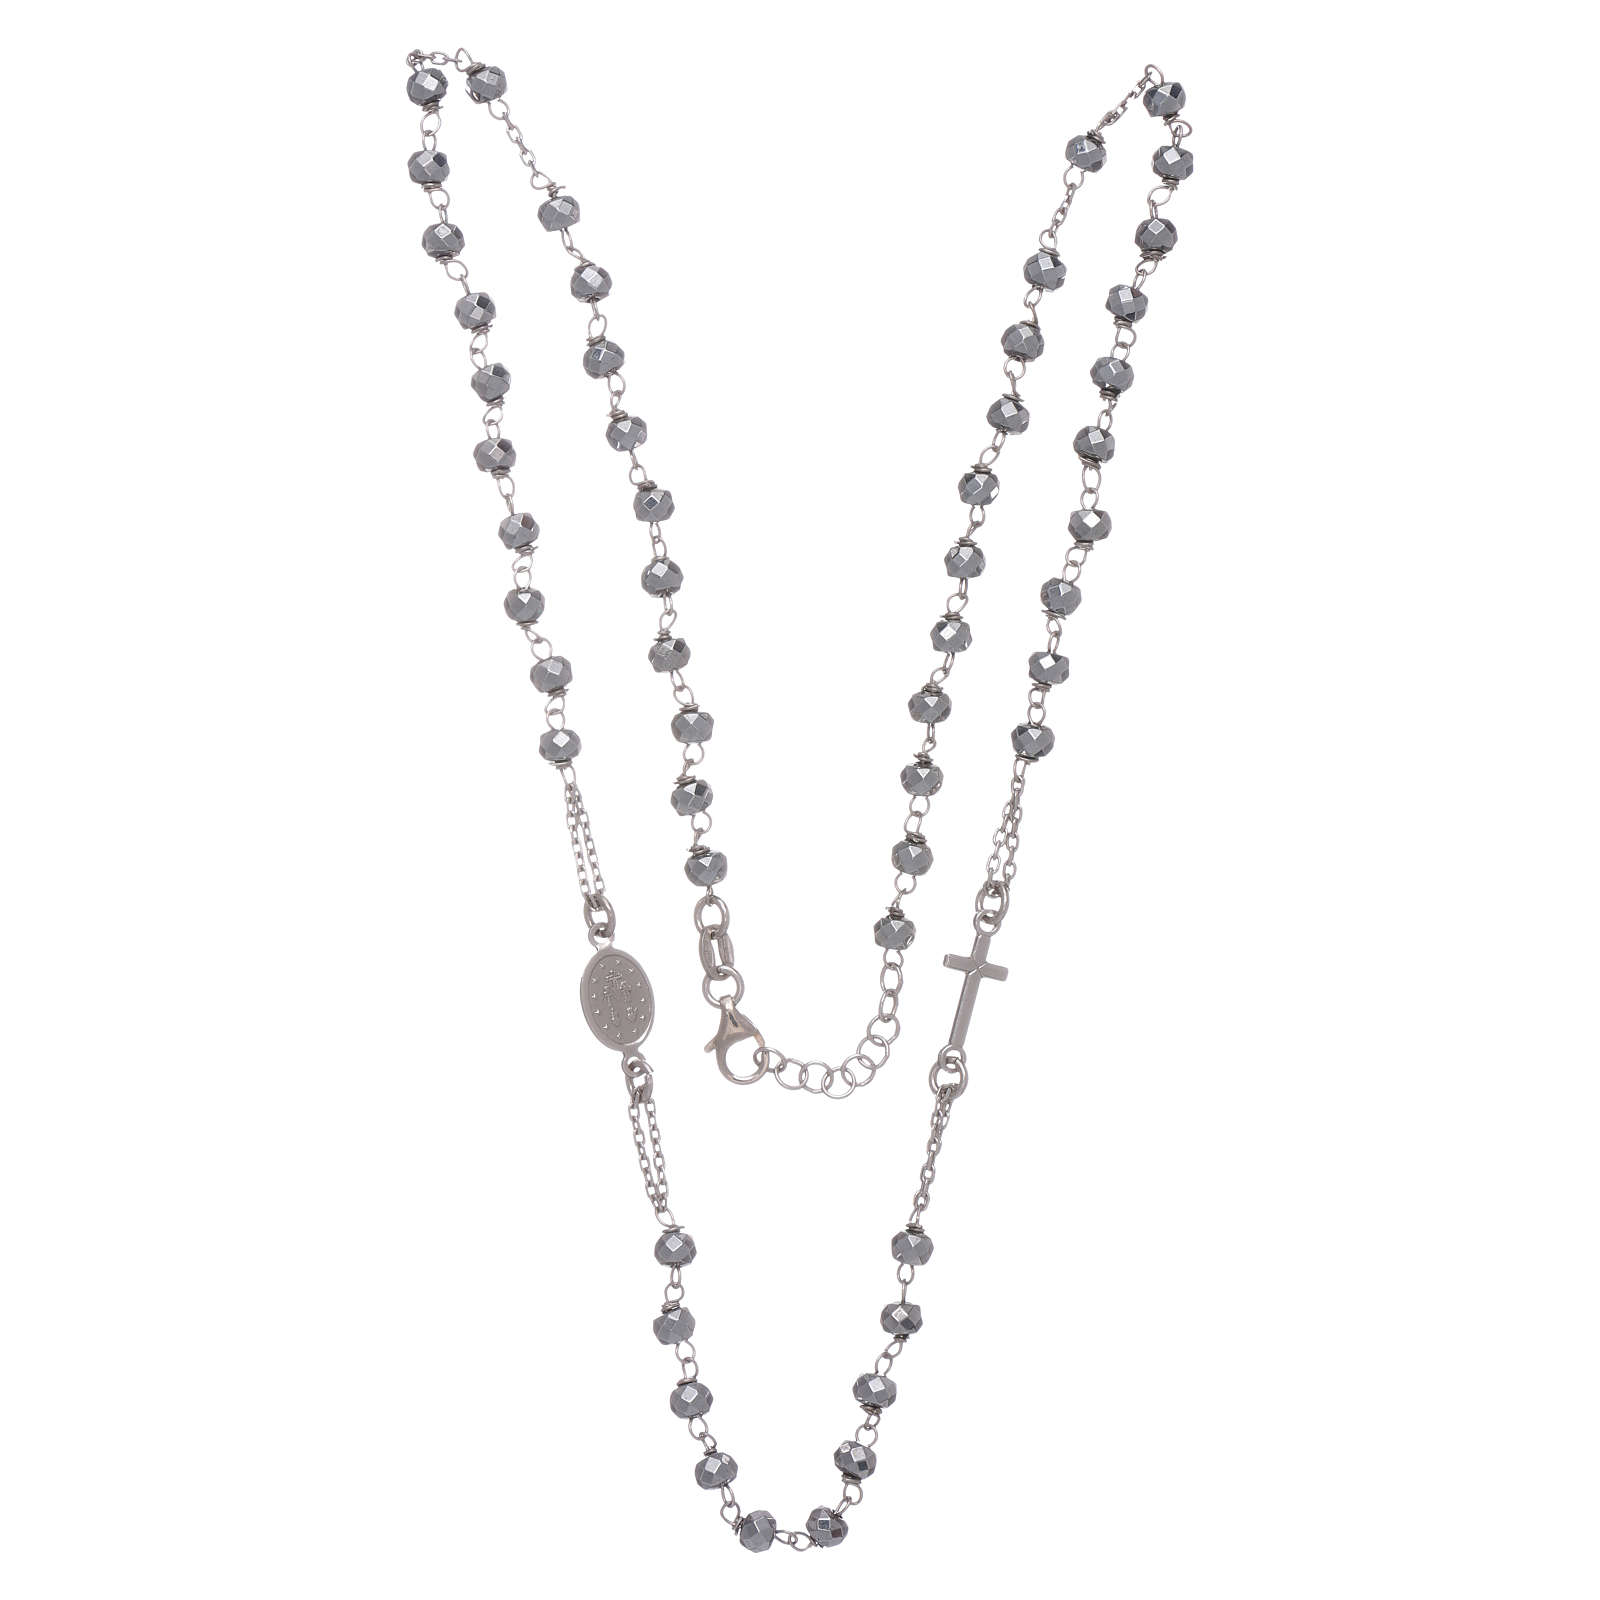 Rosary choker in 925 sterling silver with hematite spheres finished in rhodium 5 mm 4